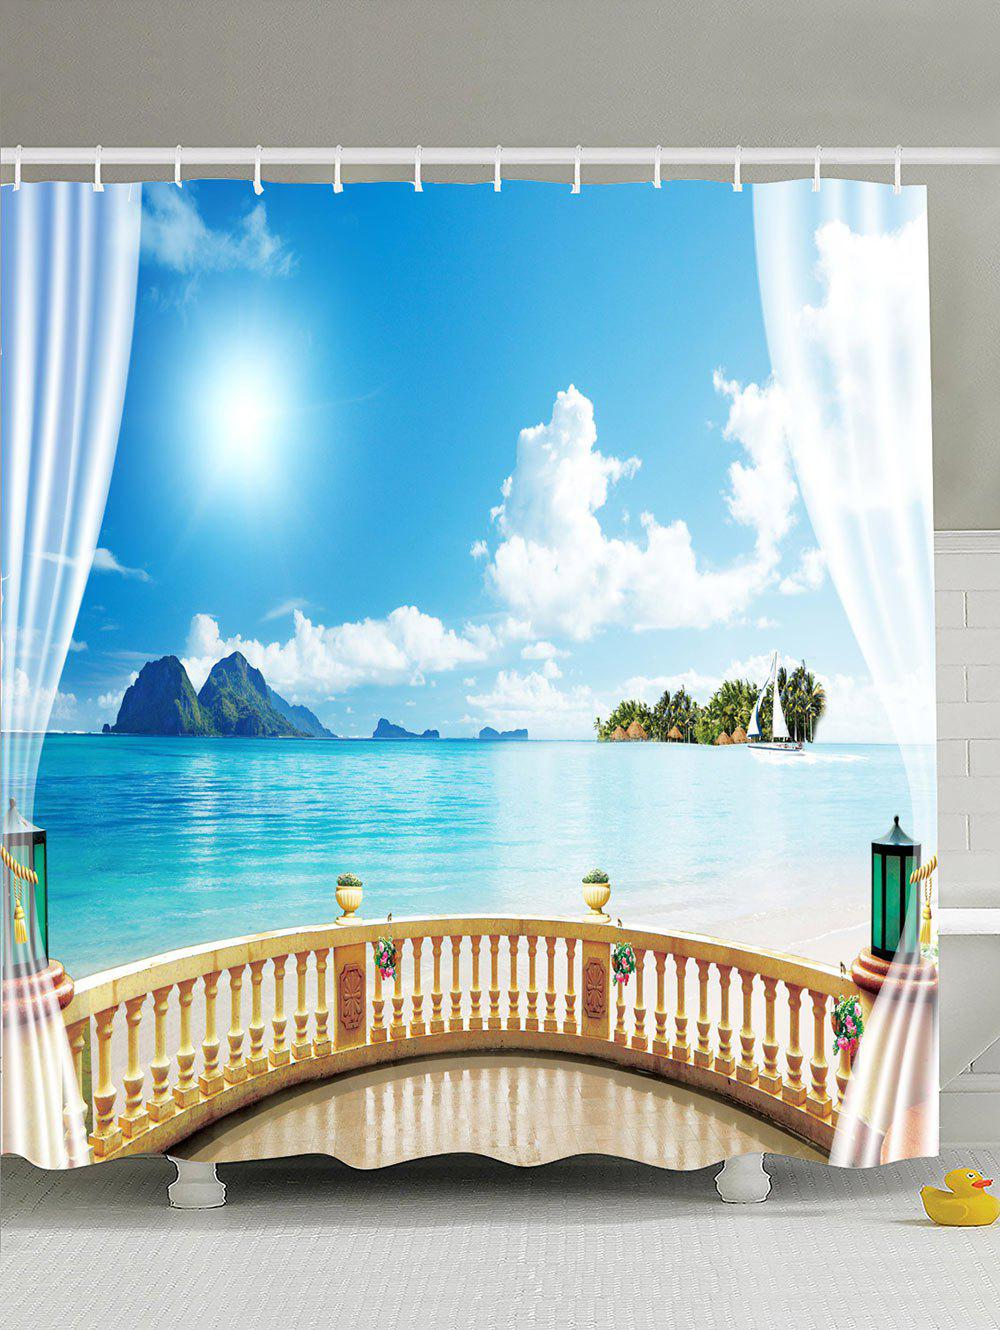 Delicieux Buy Seascape Printed Waterproof Fabric Shower Curtain